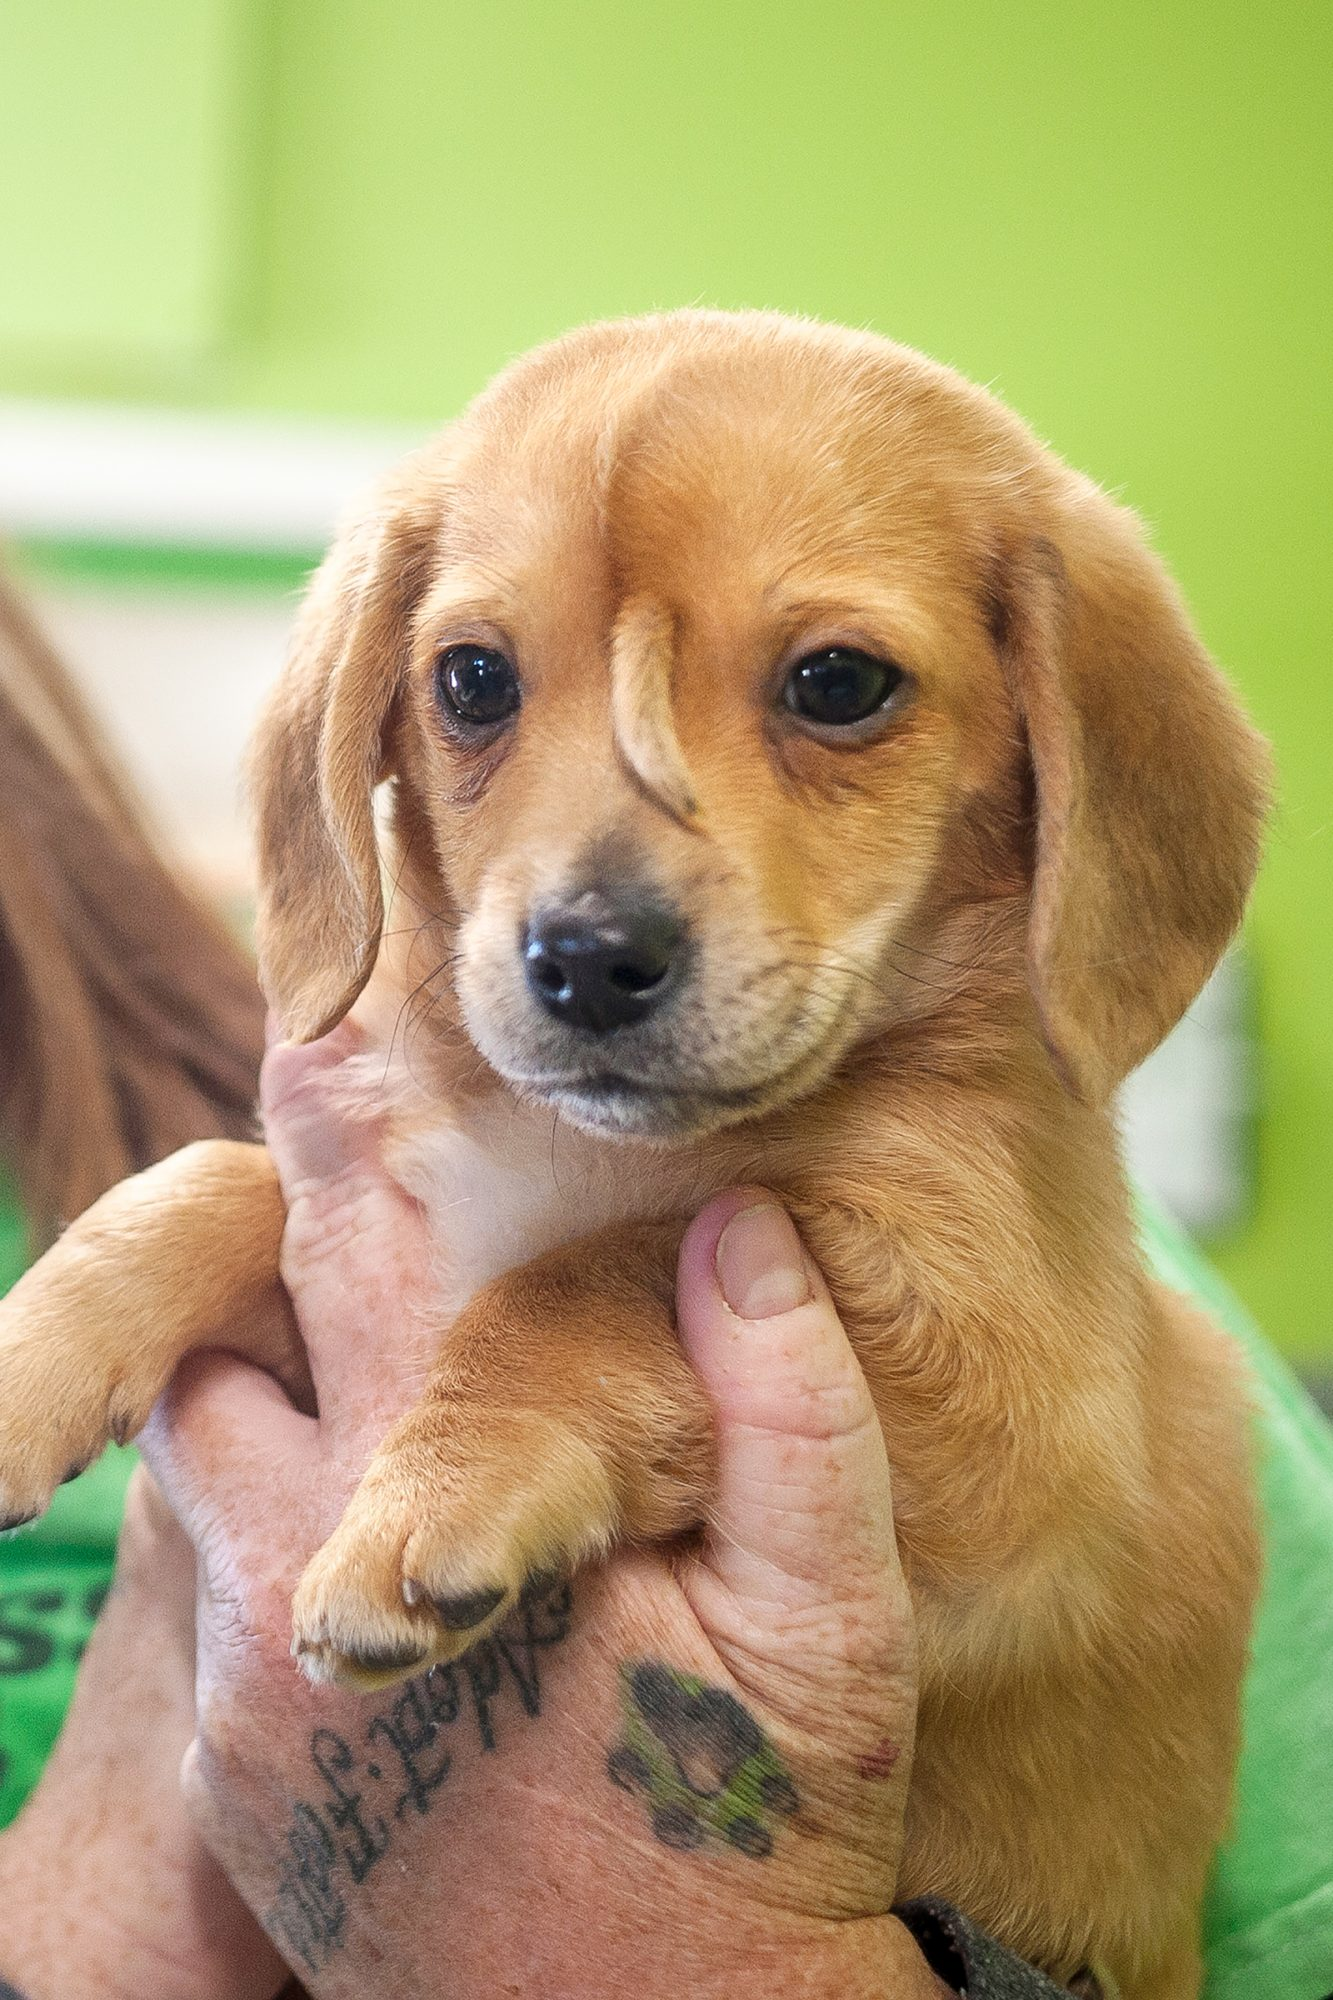 """Mac's Mission animal rescue founder Rochelle Steffen holds a 10-week-old golden retriever puppy with a small tail growing between his eyes, dubbed """"Narwhal,"""" Wednesday, Nov. 13, 2019, in Jackson, Mo. The puppy's condition has led to widespread online notoriety and, Steffen said, a flood of adoption offers."""